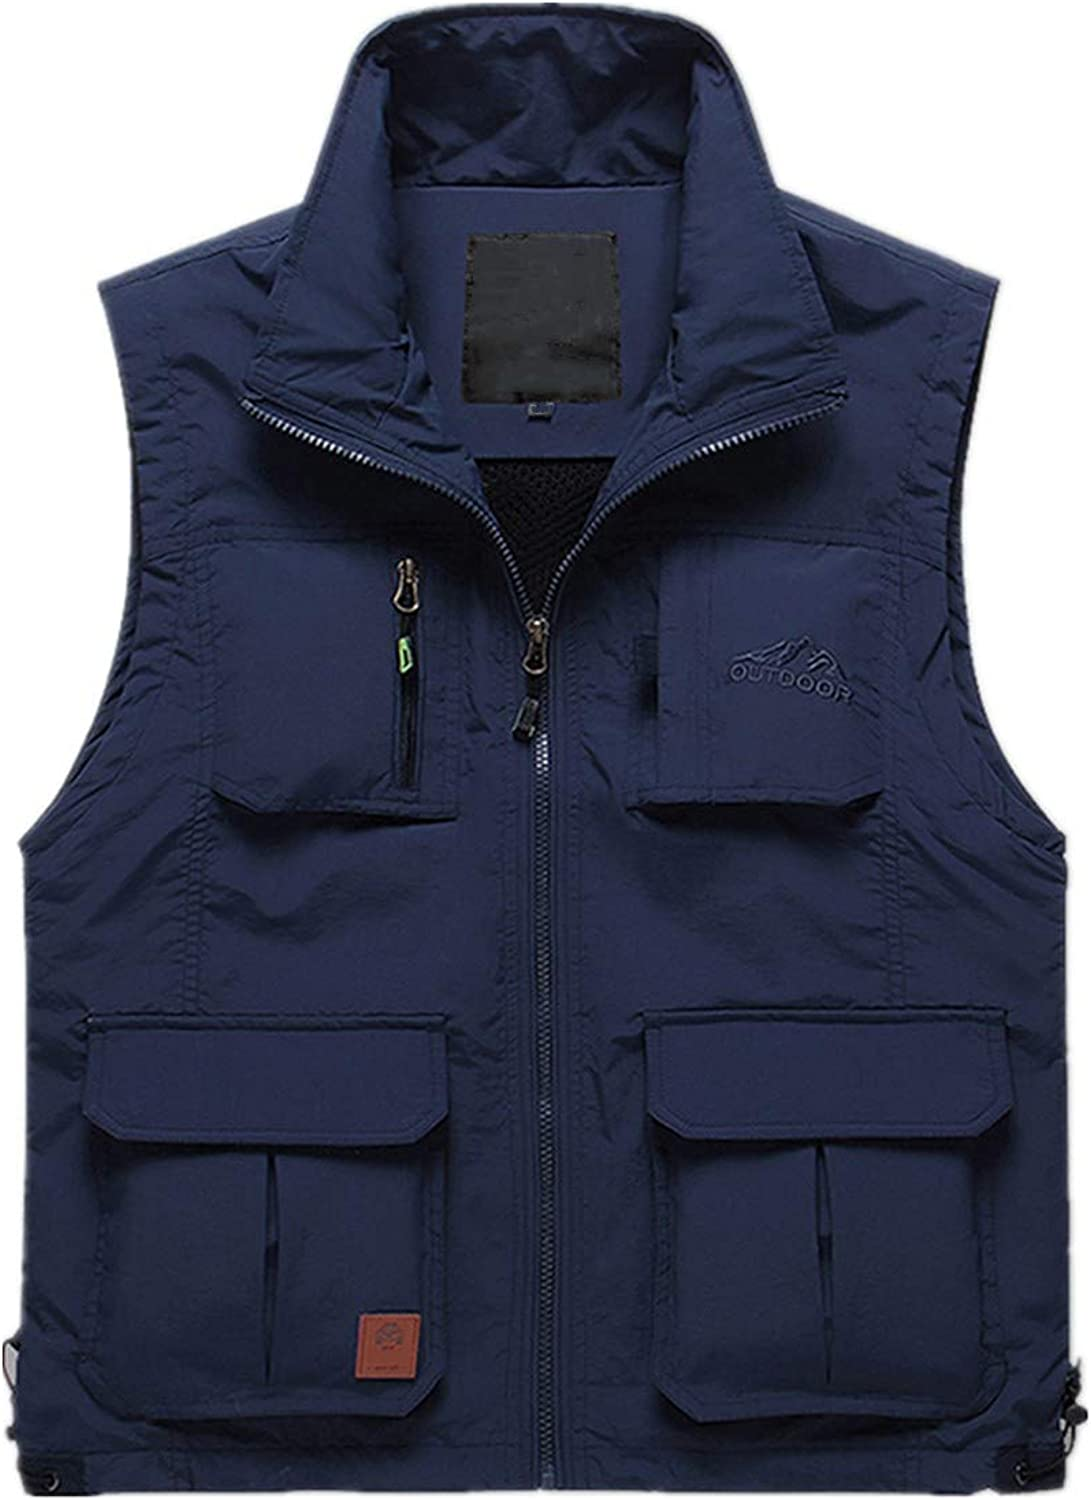 XINFU Men's Photography Outdoor Leisure Vest Fishing Mountaineering Vest Plus Velvet No Plus Velvet Multi-Pocket